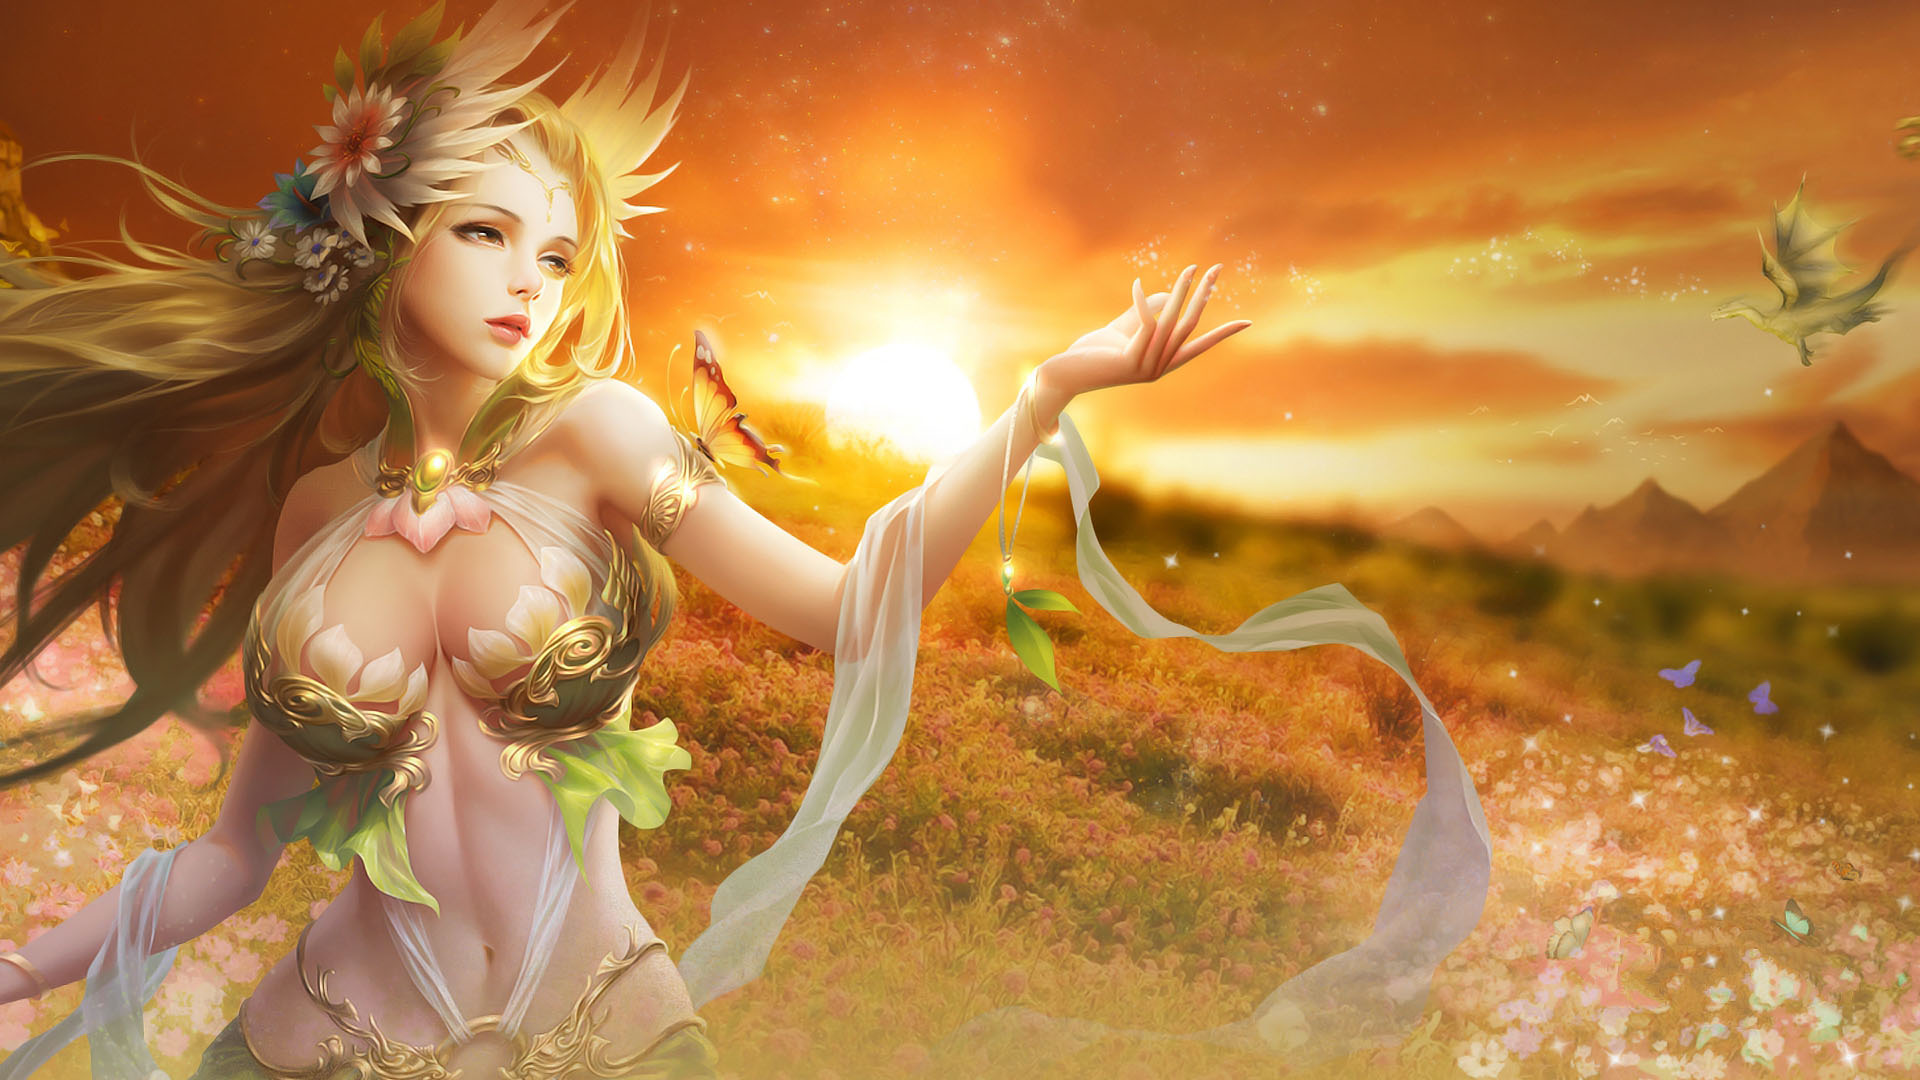 Fantasy girl hd wallpapers wallpaperscharlie 1920x1080 voltagebd